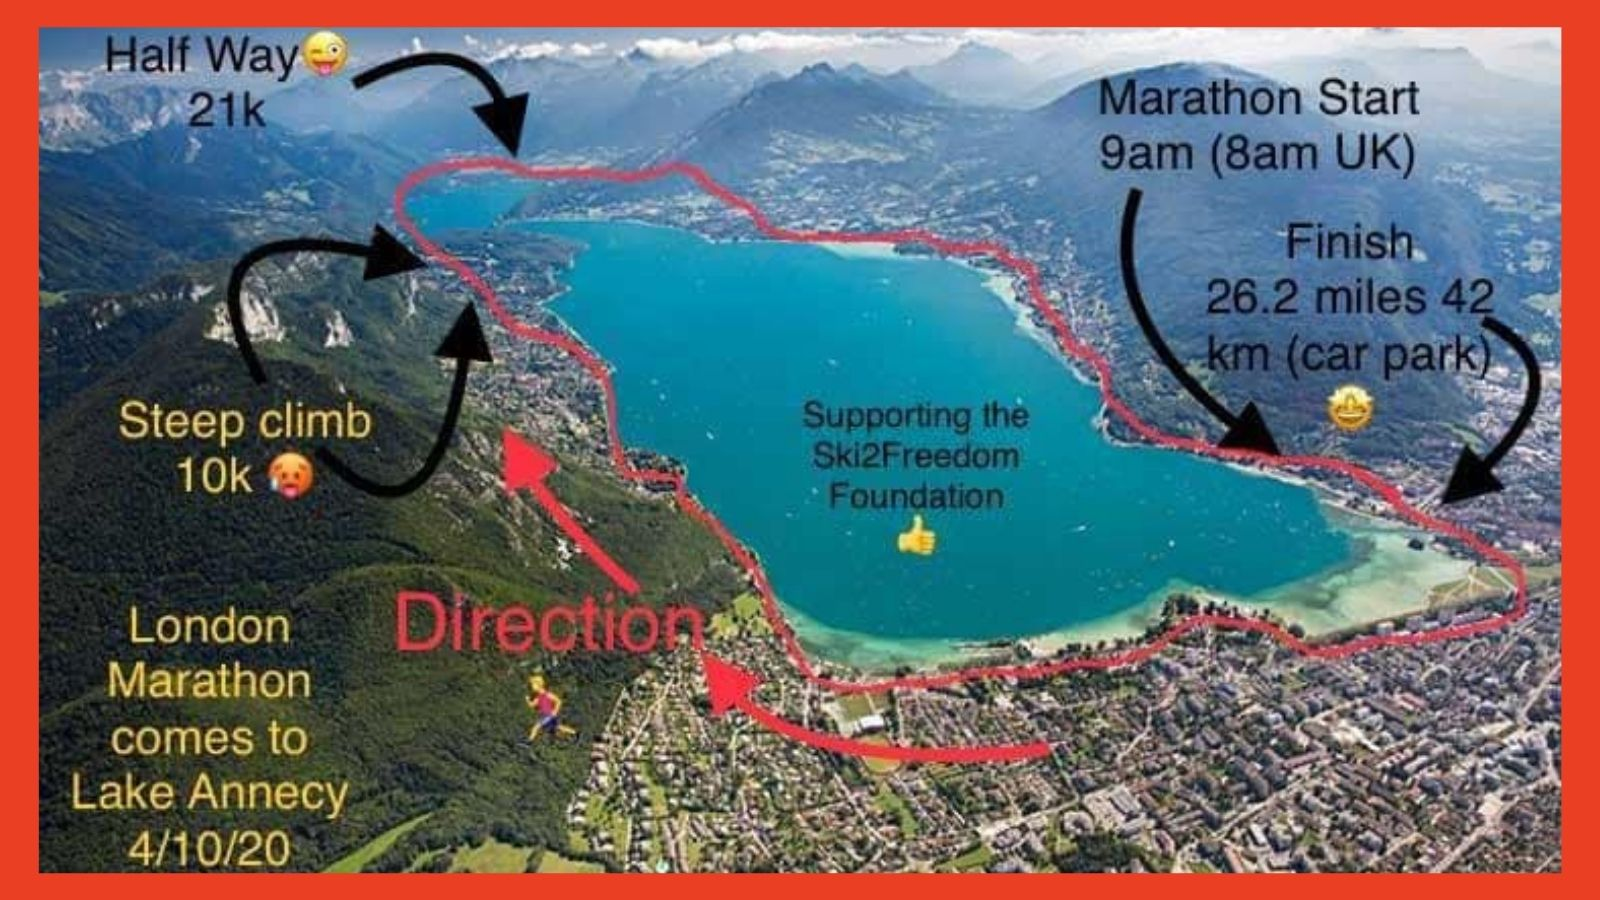 map showing Mark's running route around Lake Annecy - marking out the start, finish & climb section